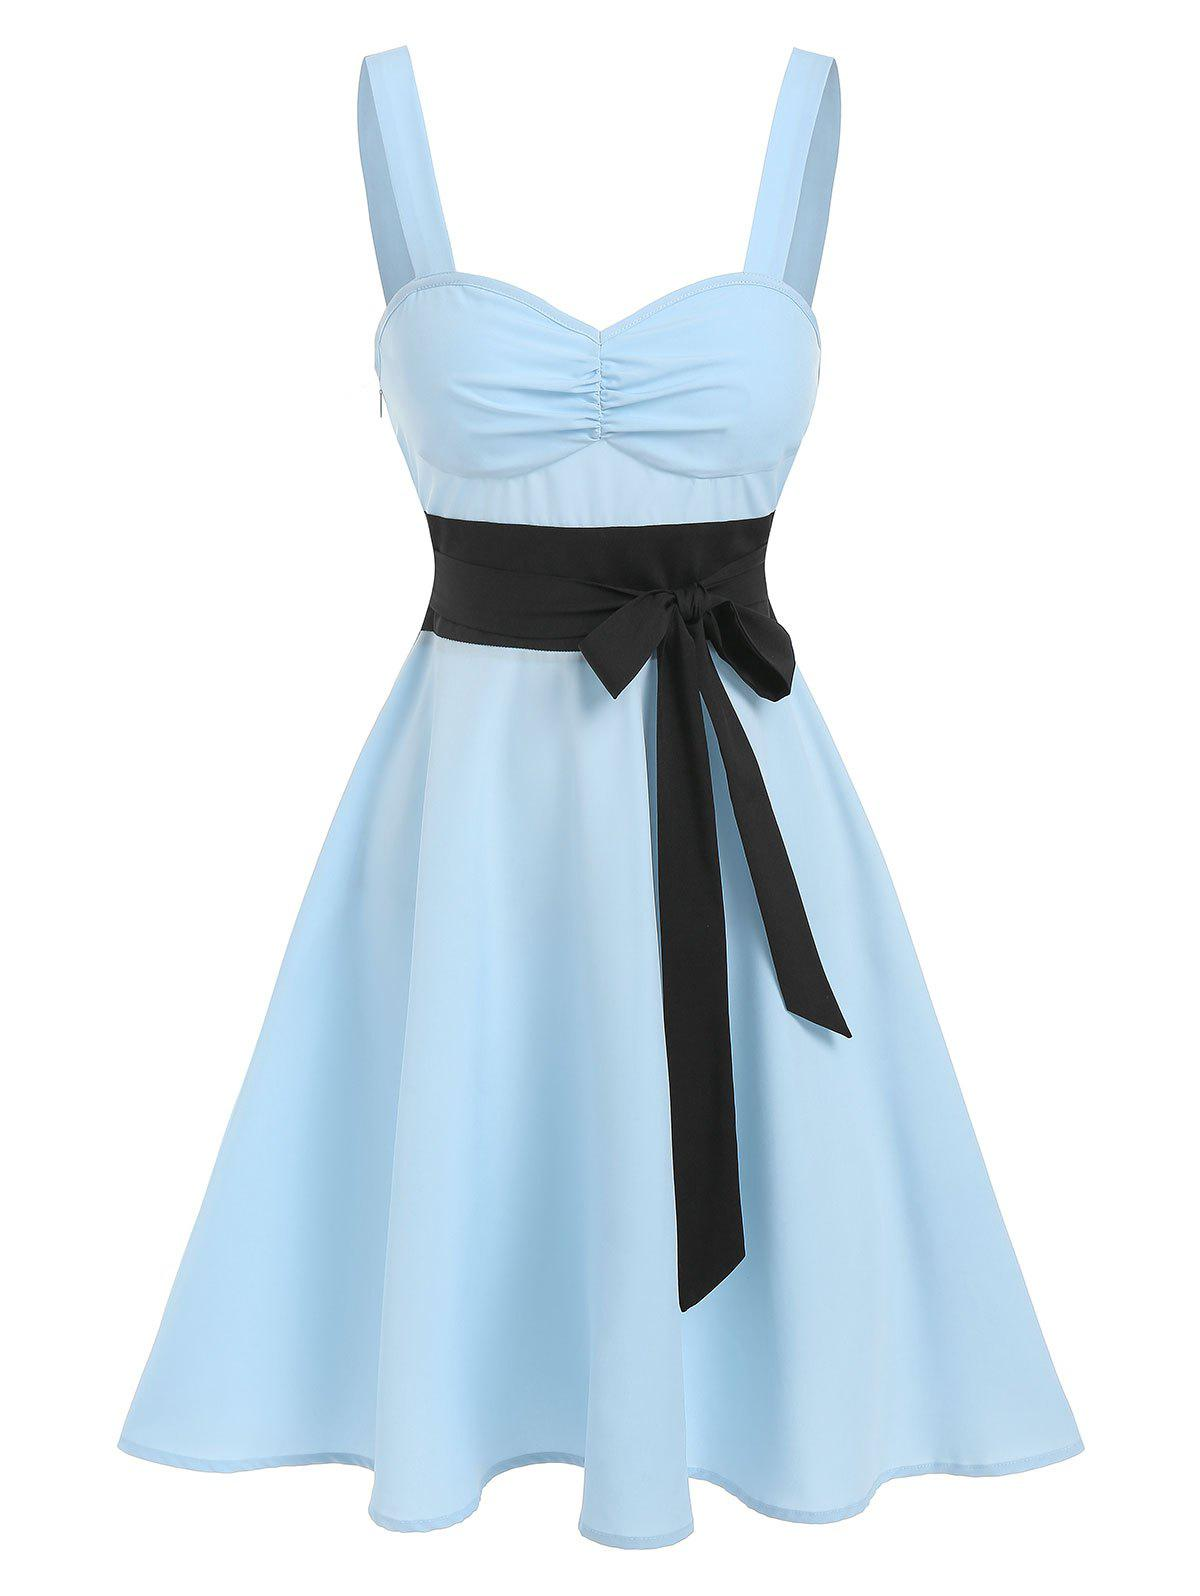 Two Tone Bowknot Ruched Flare Dress - LIGHT BLUE XXXL